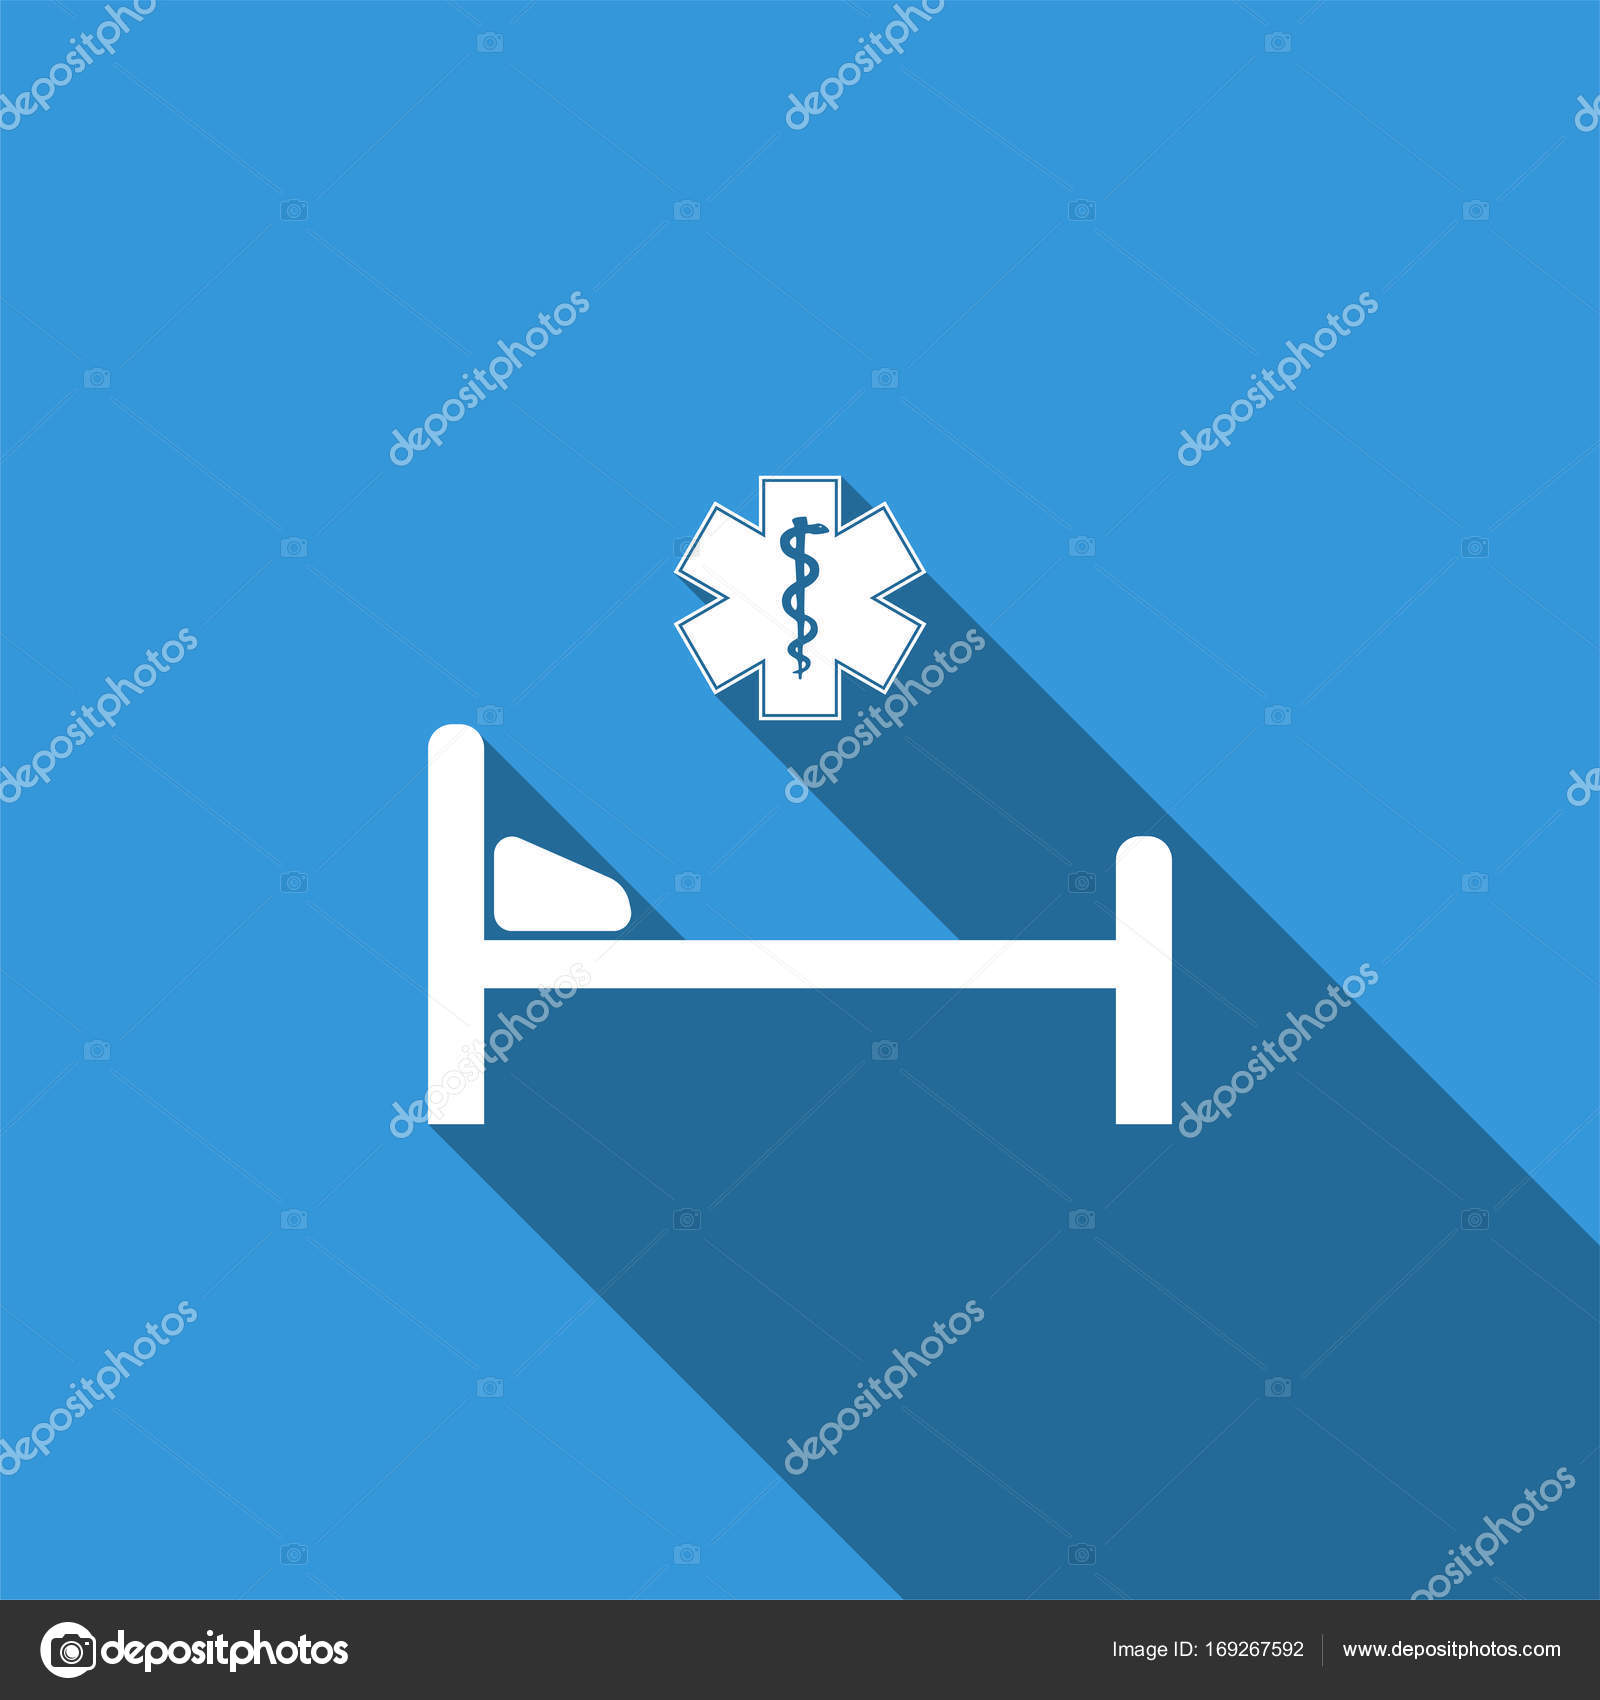 Hospital Bed With Medical Symbol Of The Emergency Star Of Life